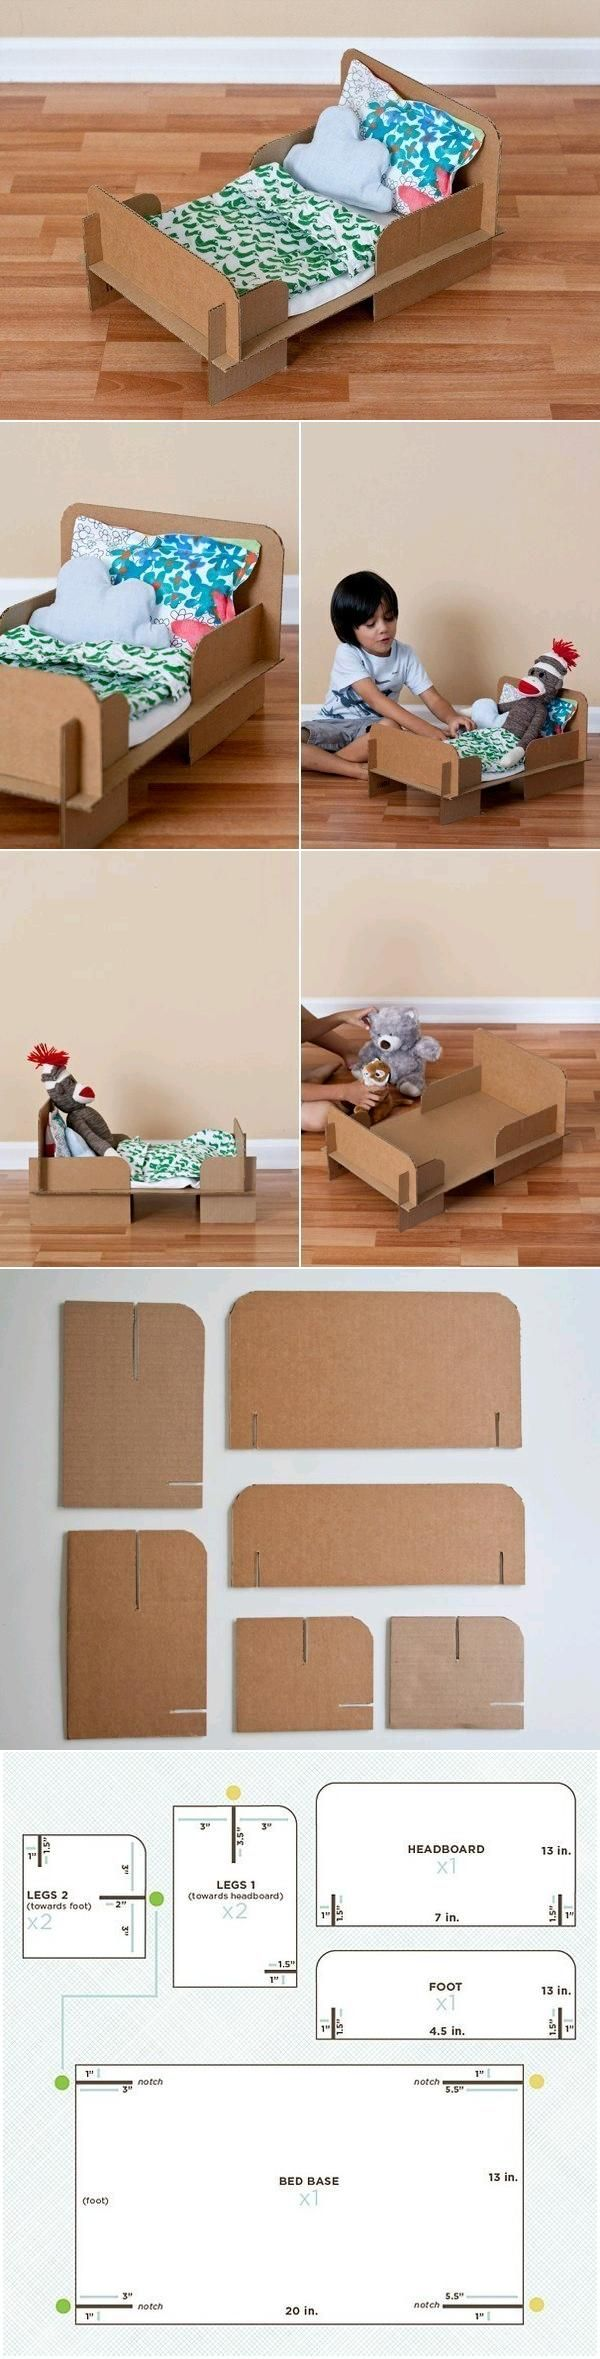 directions and pictures about how to make a doll's bed.